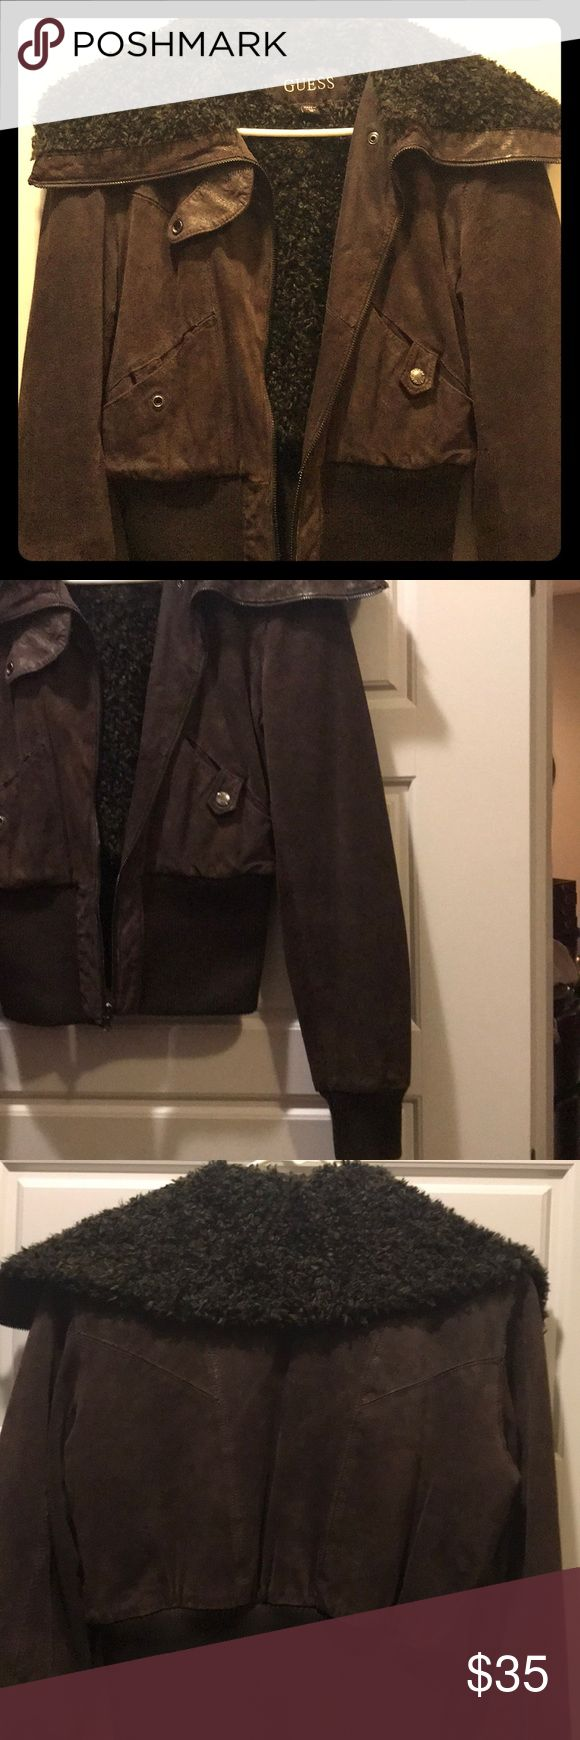 Brown Bomber Jacket Beautiful dark brown suede and fur GUESS bomber jacket! Hardly worn! Fully lined and very warm! Full fur collar through front and back, the suede also has a gorgeous goldfish sheen to it! This jacket hits right at top of hips. Guess Jackets & Coats